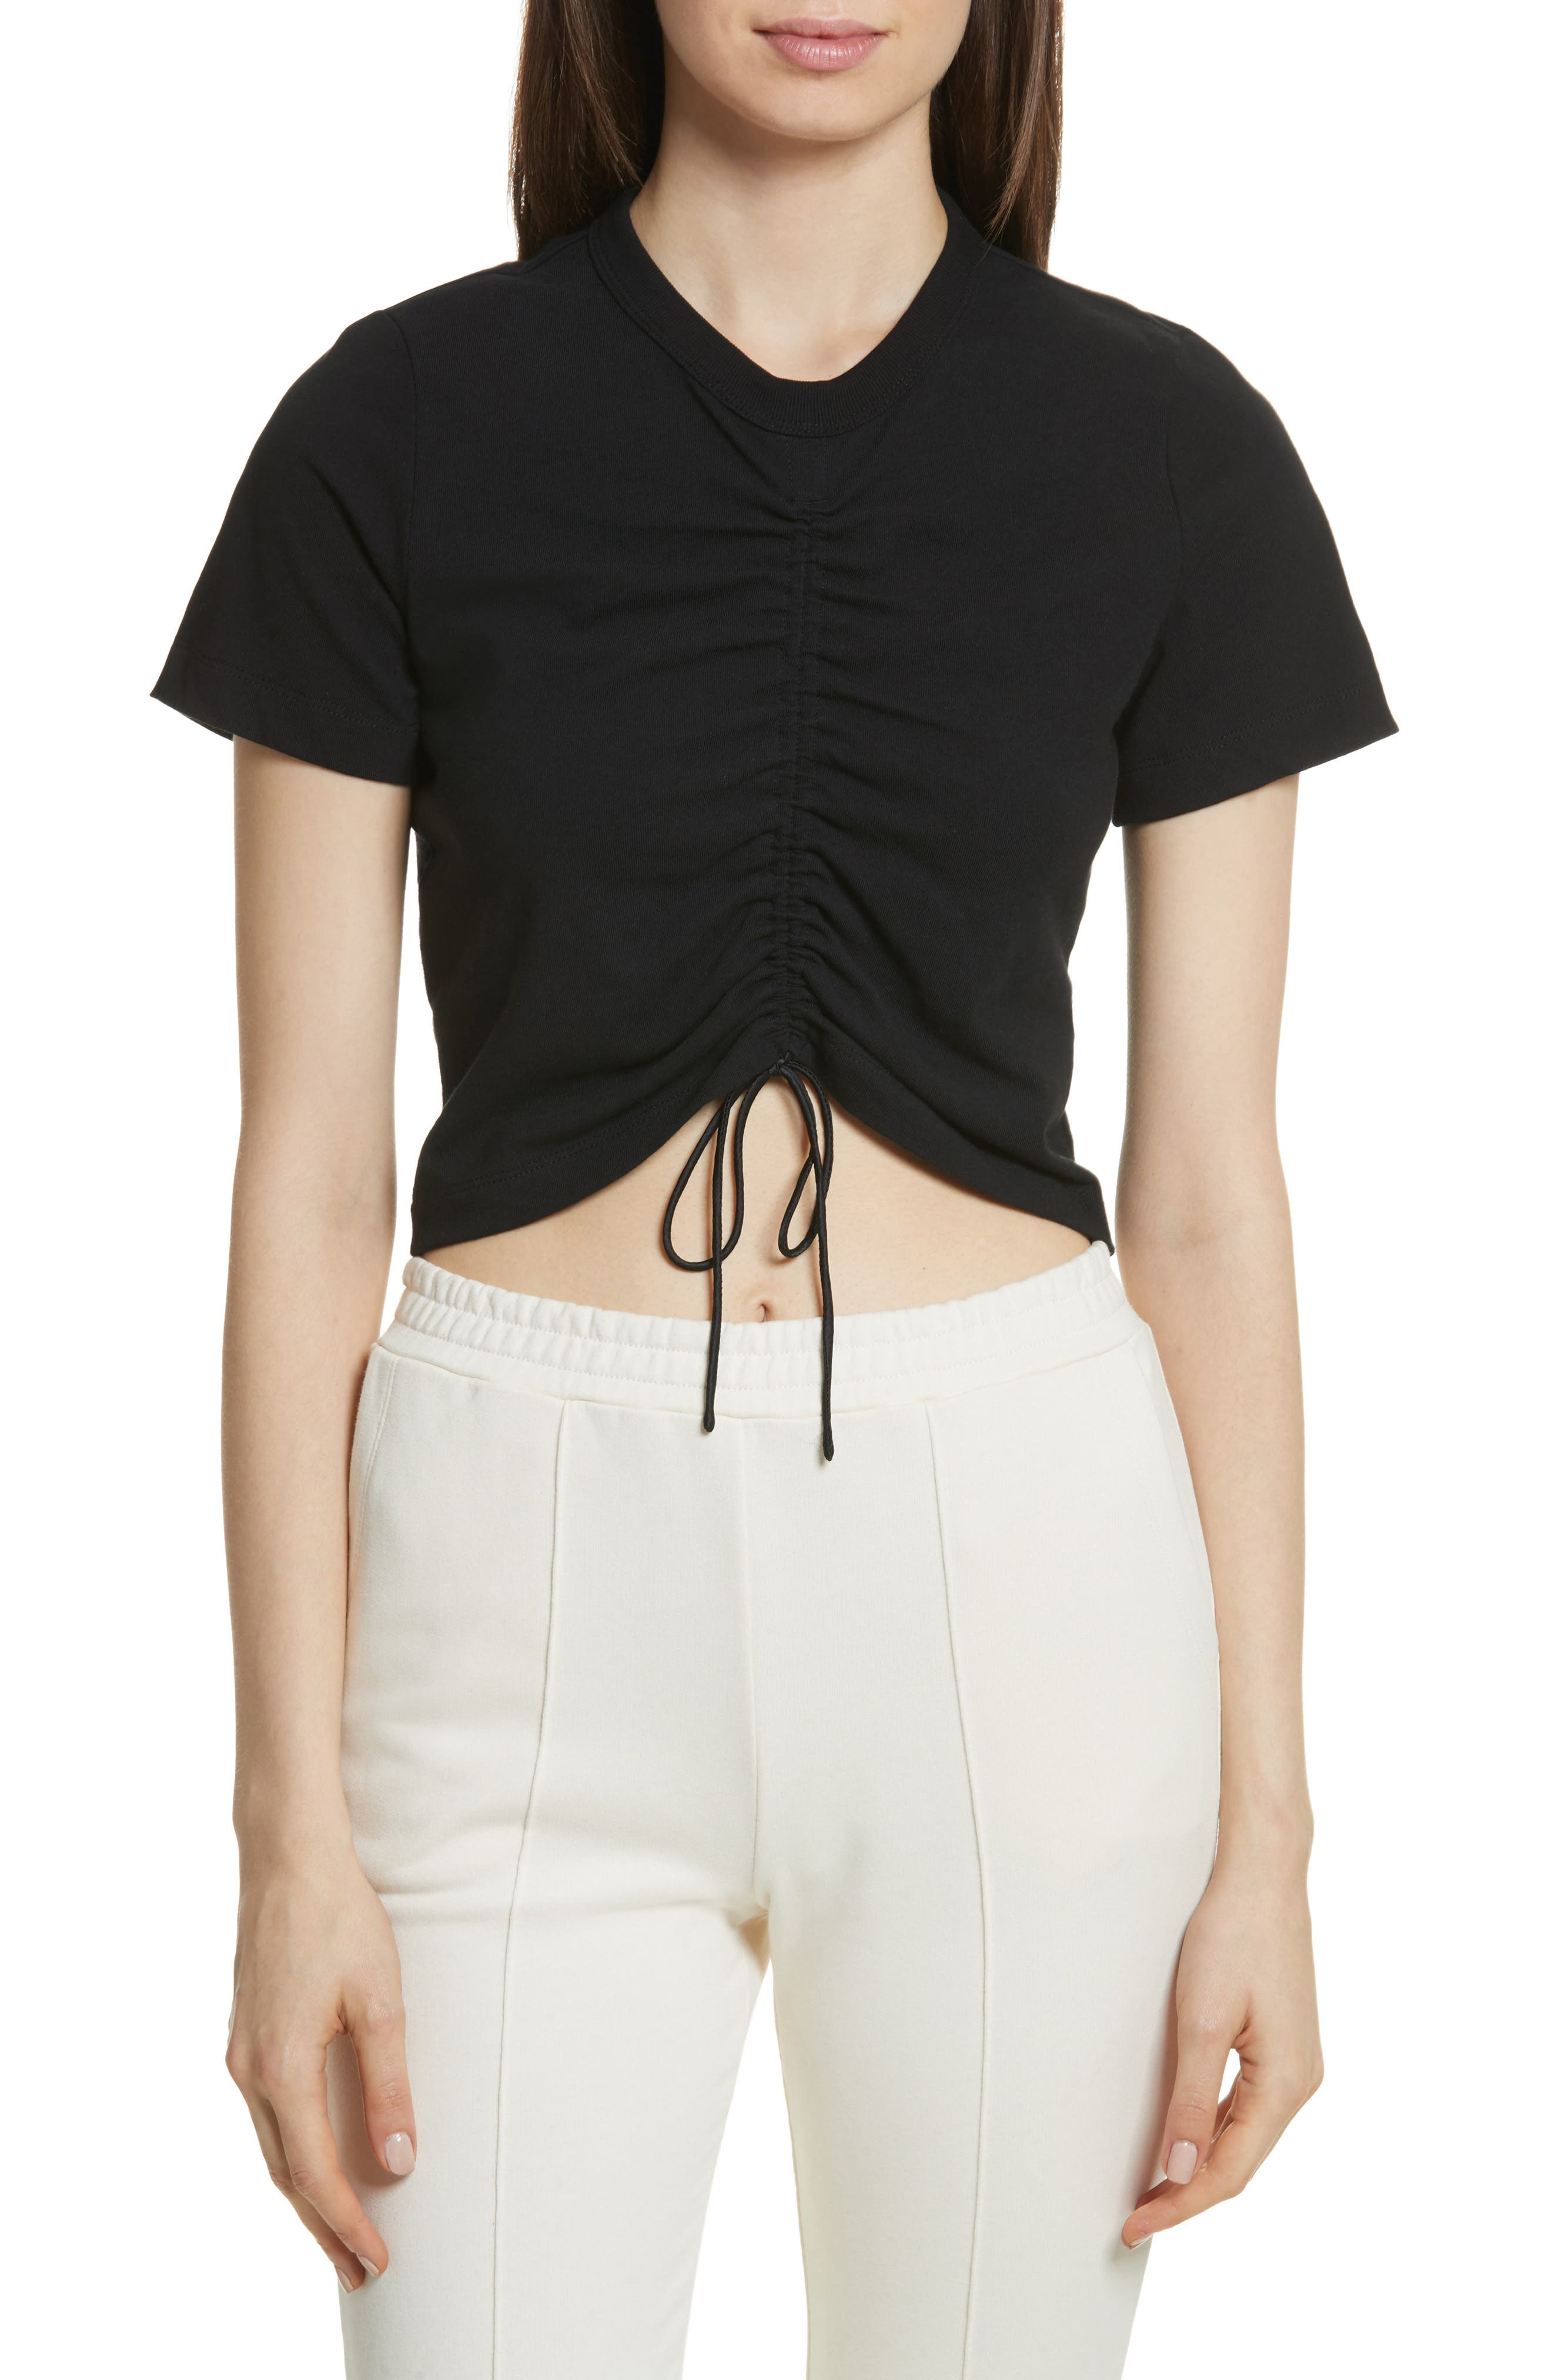 Alternate Image 1 Selected - T by Alexander Wang Ruched Cotton Tee